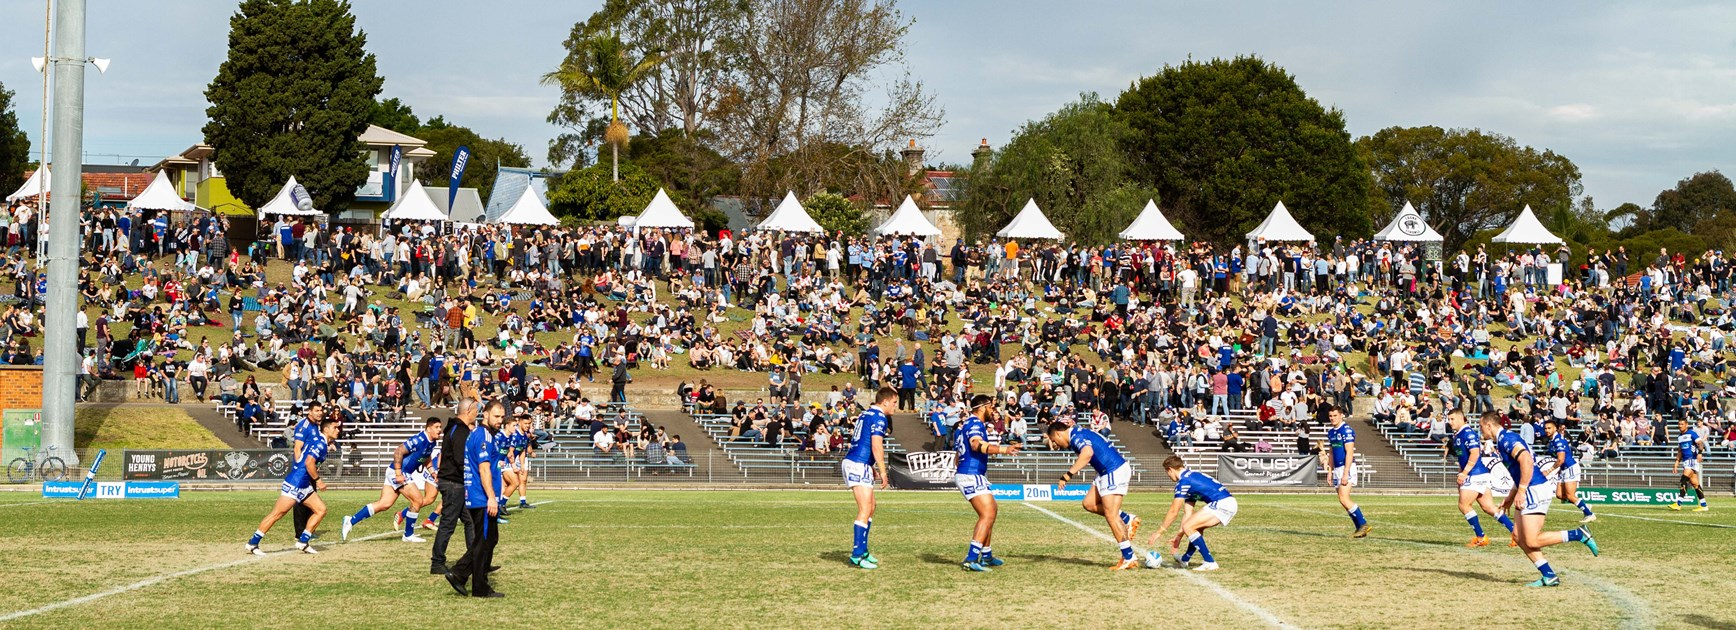 BIGGEST STORIES | #8 – Fans Flock To Henson For Festival Of Footy